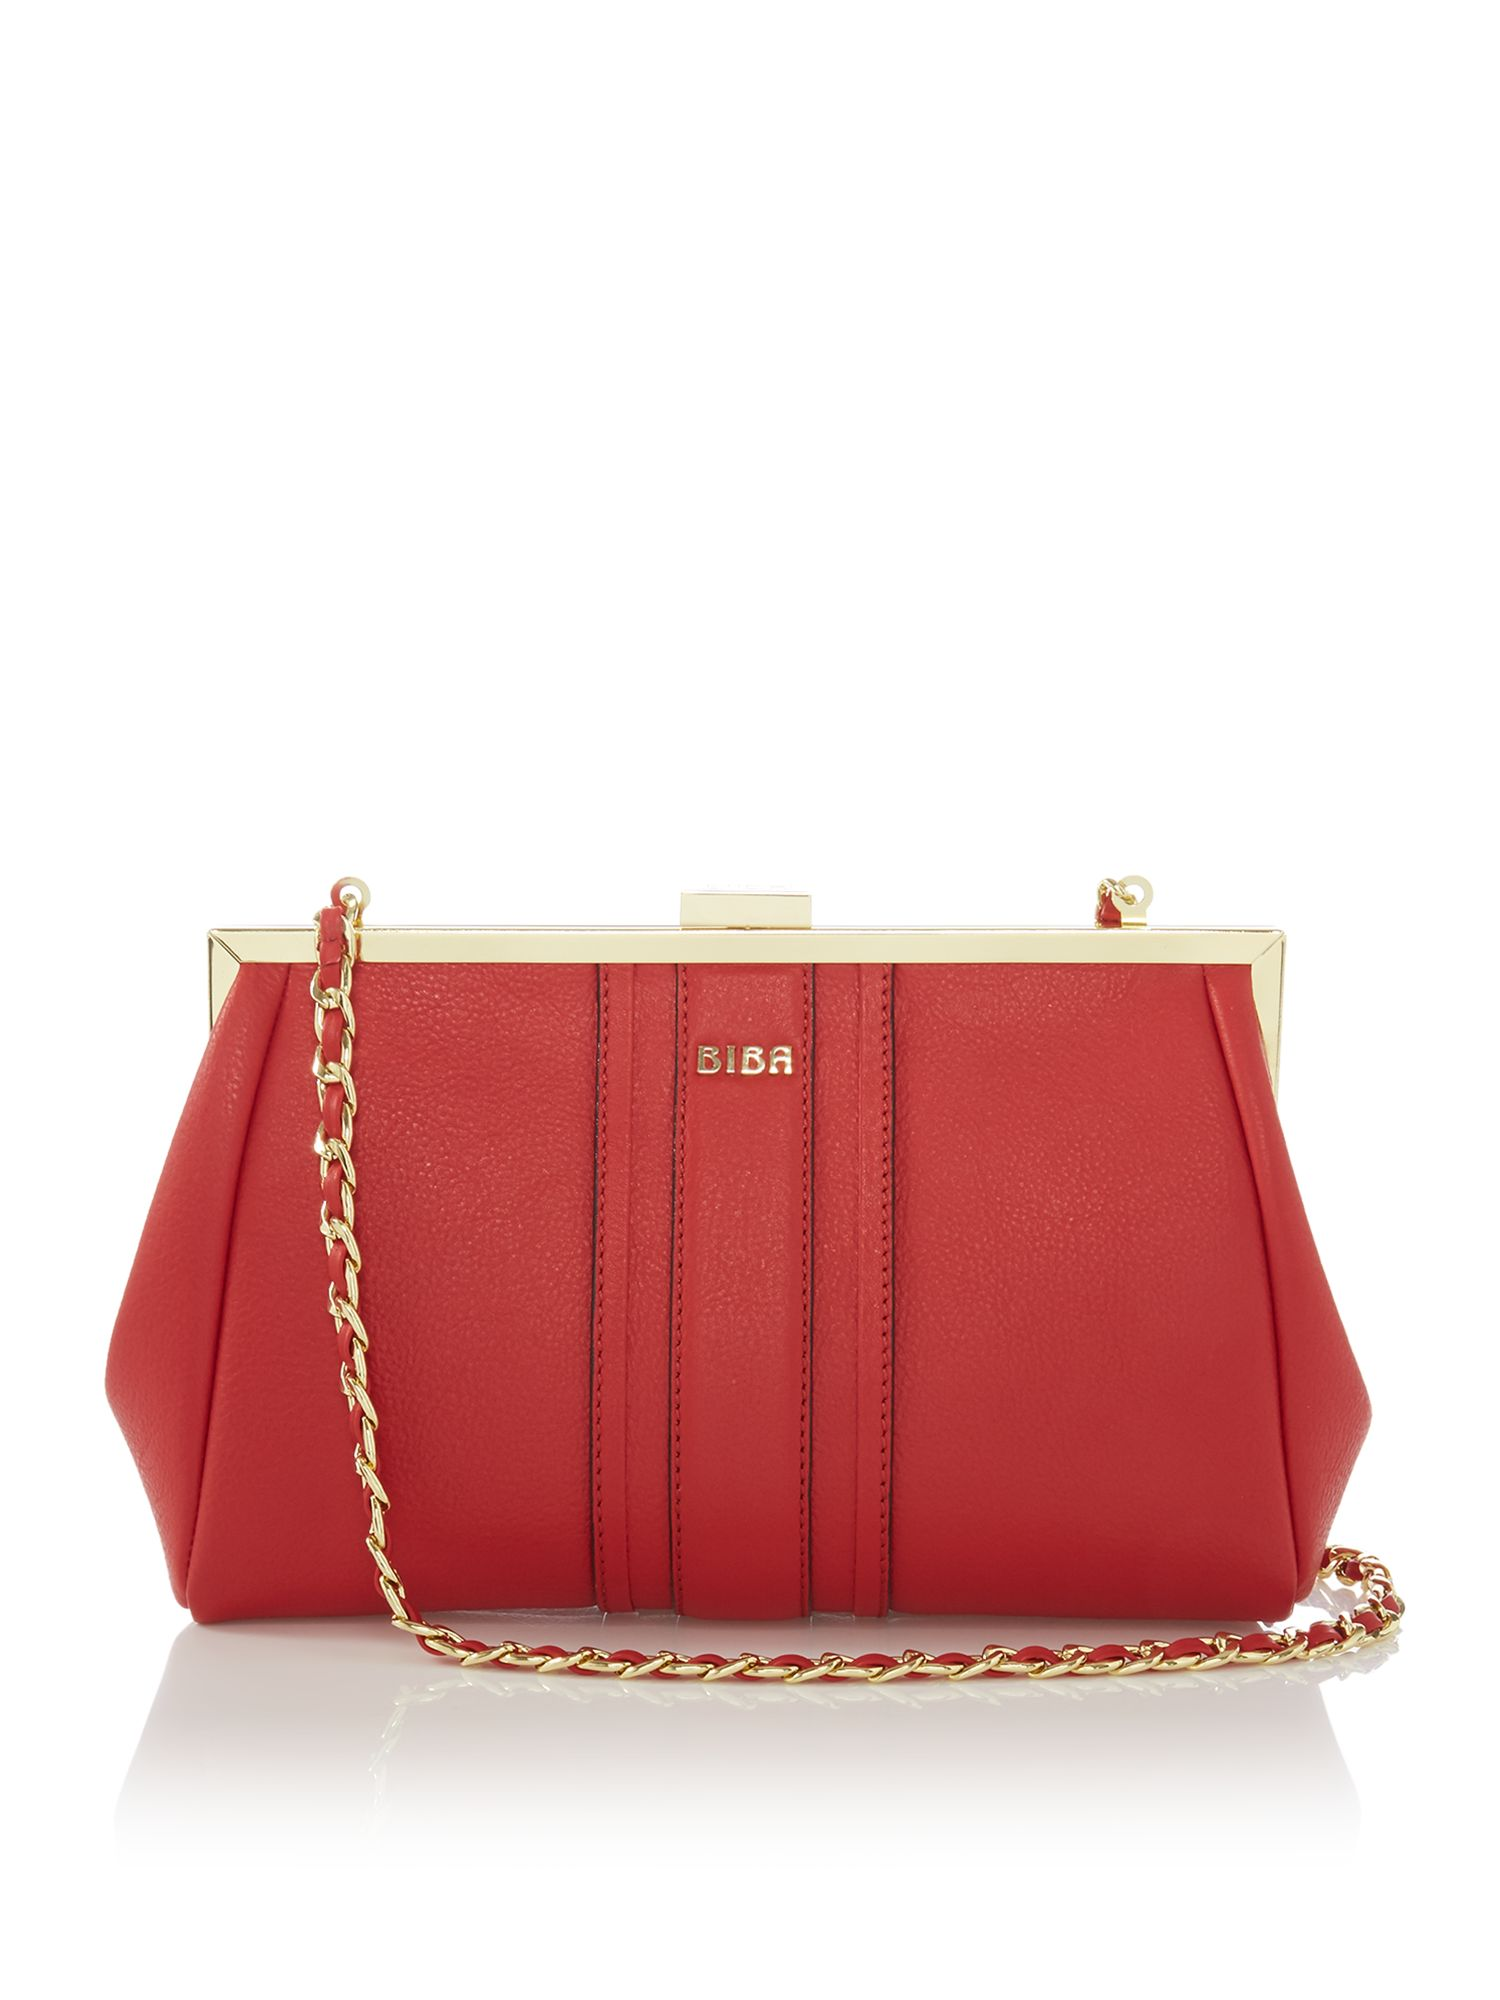 Biba Paige Frame Leather Clutch Bag, Red